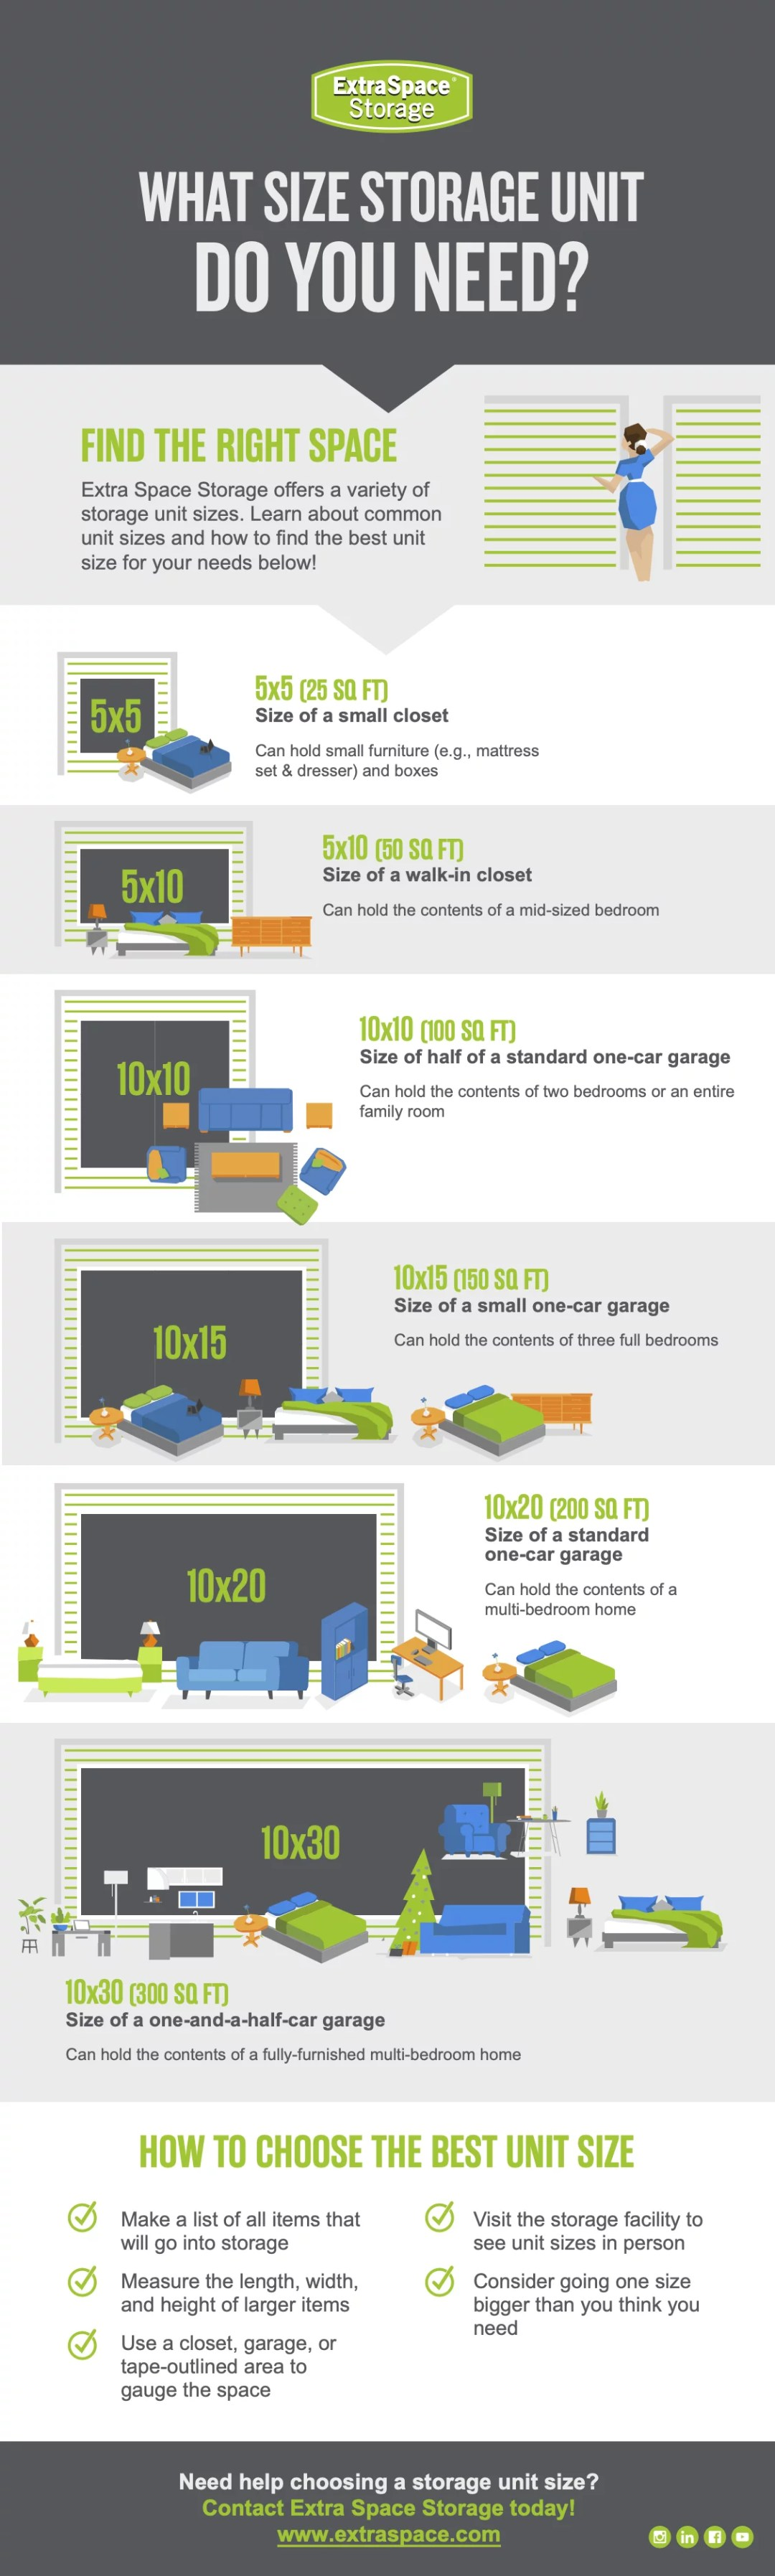 Infographic Showing What Different Storage Unit Sizes Can Hold